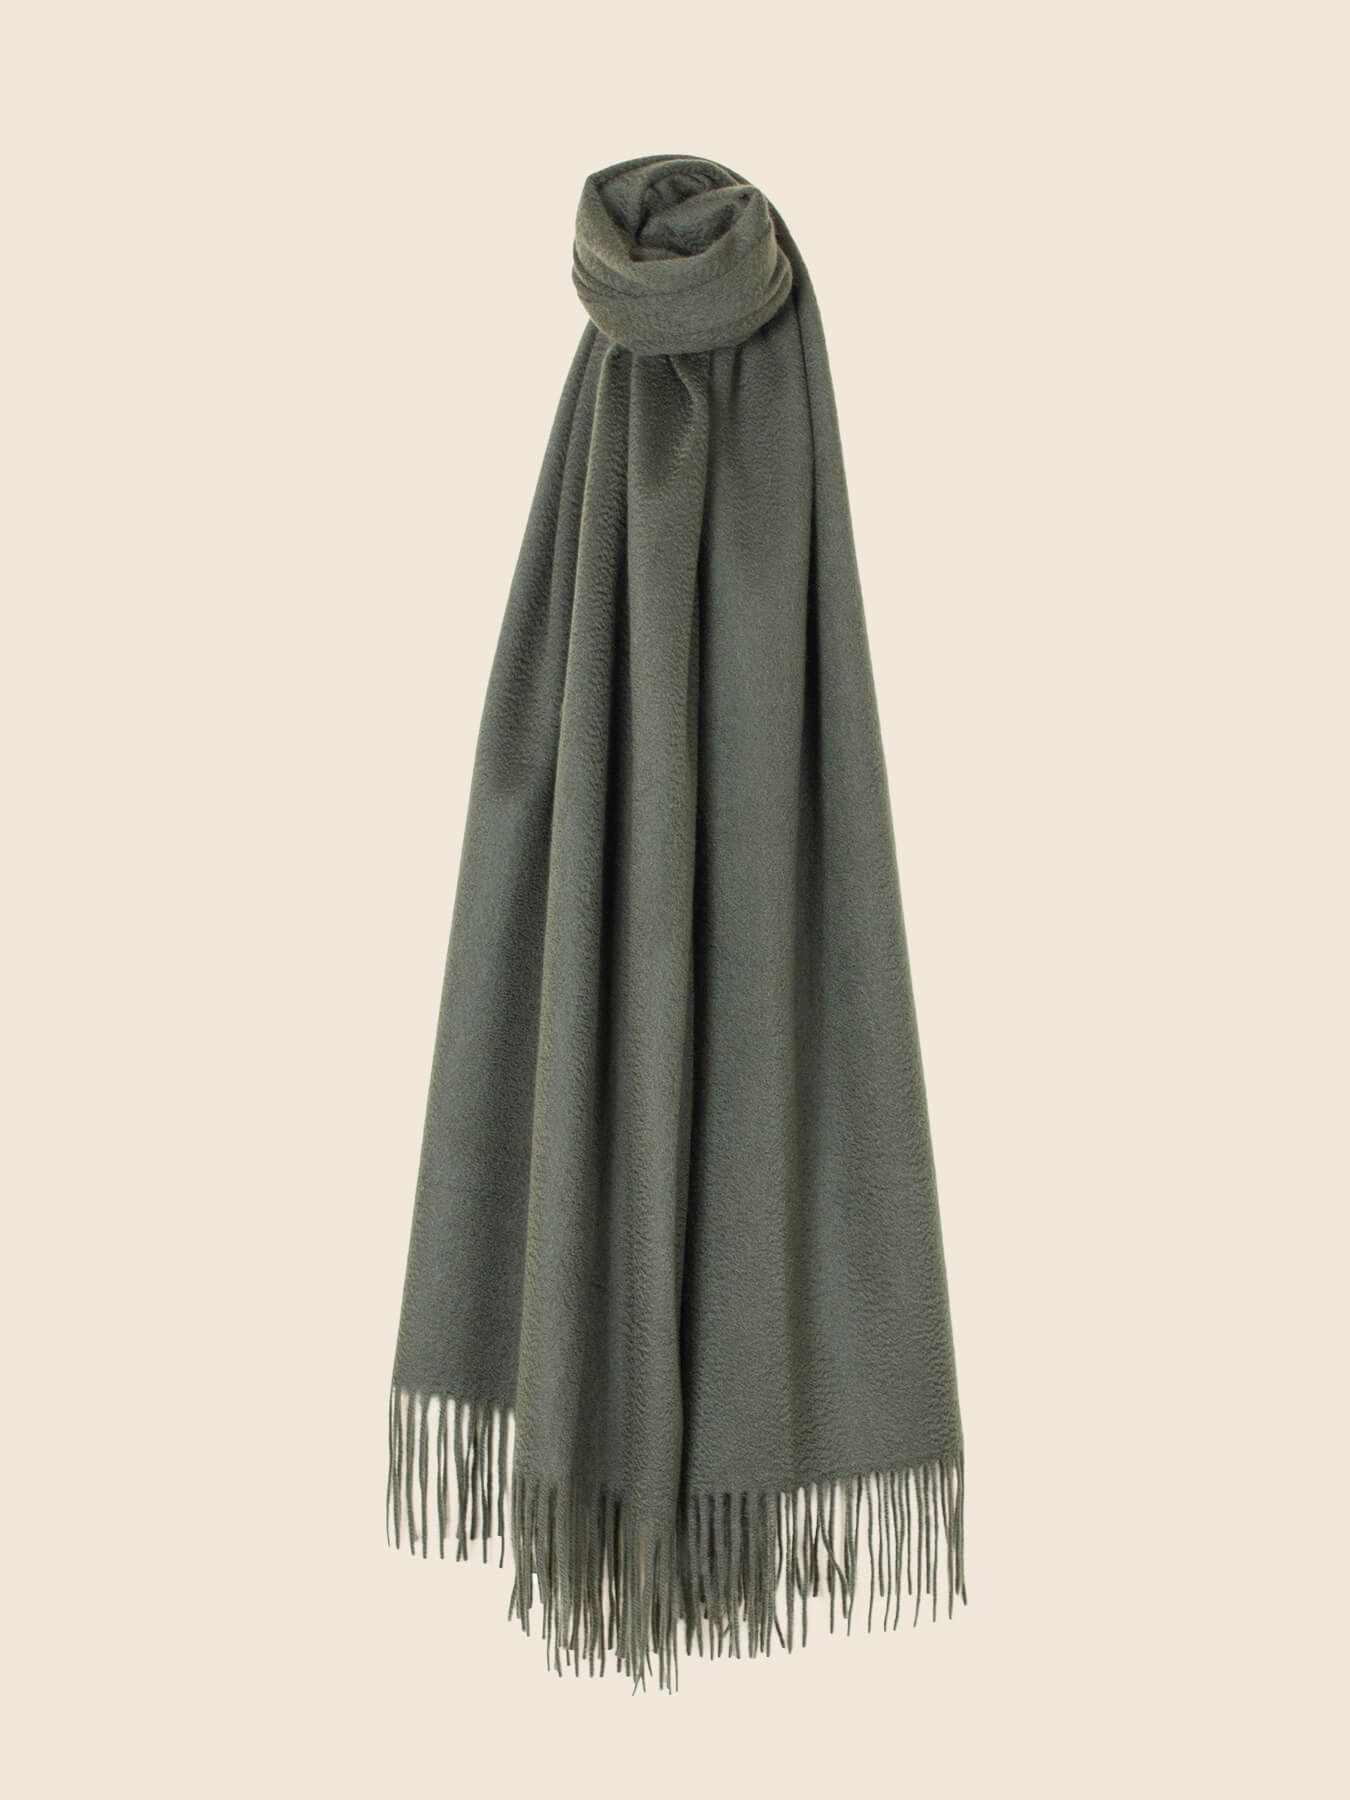 Staple Plain Cashmere Shawl Moss Green 2